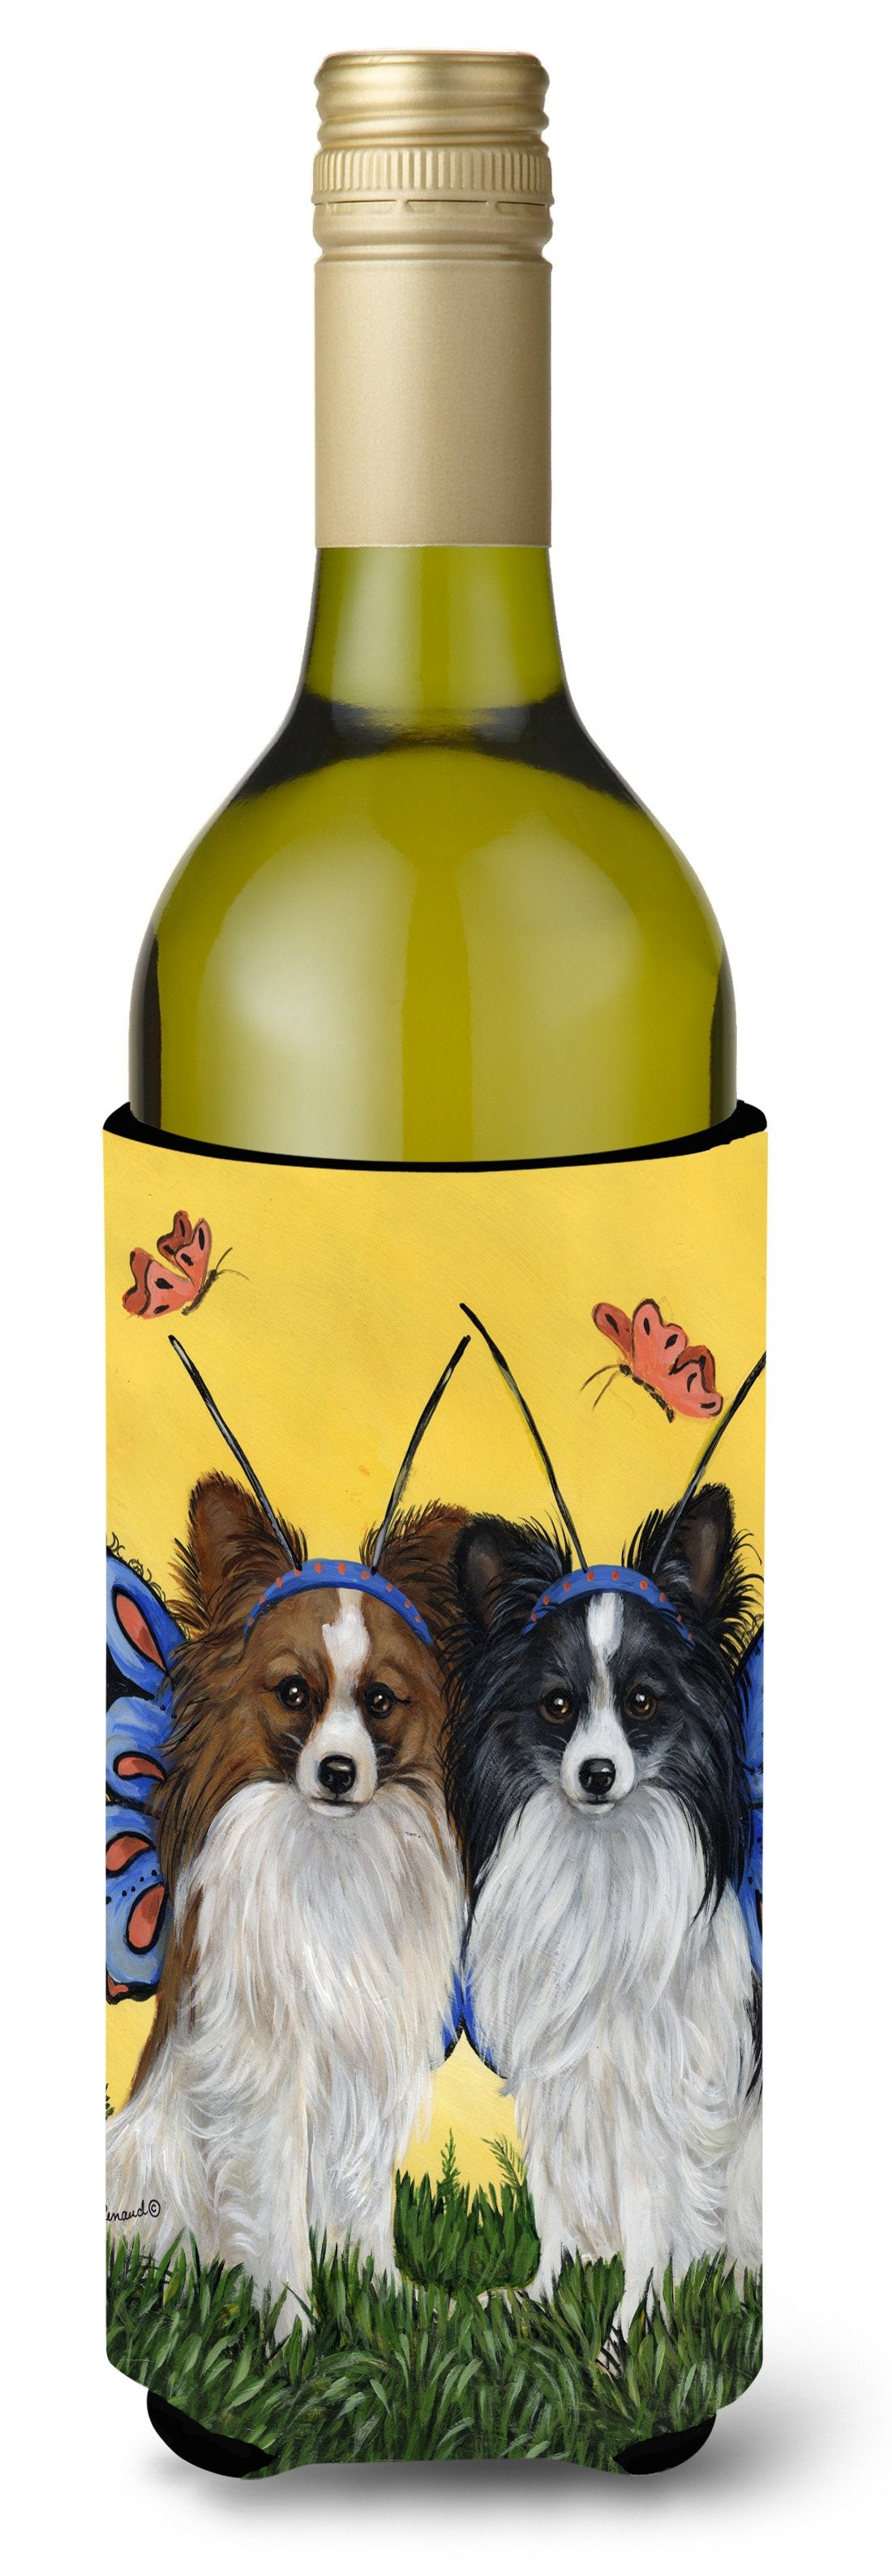 Papillon Butterflies Wine Bottle Hugger PPP3143LITERK by Caroline's Treasures